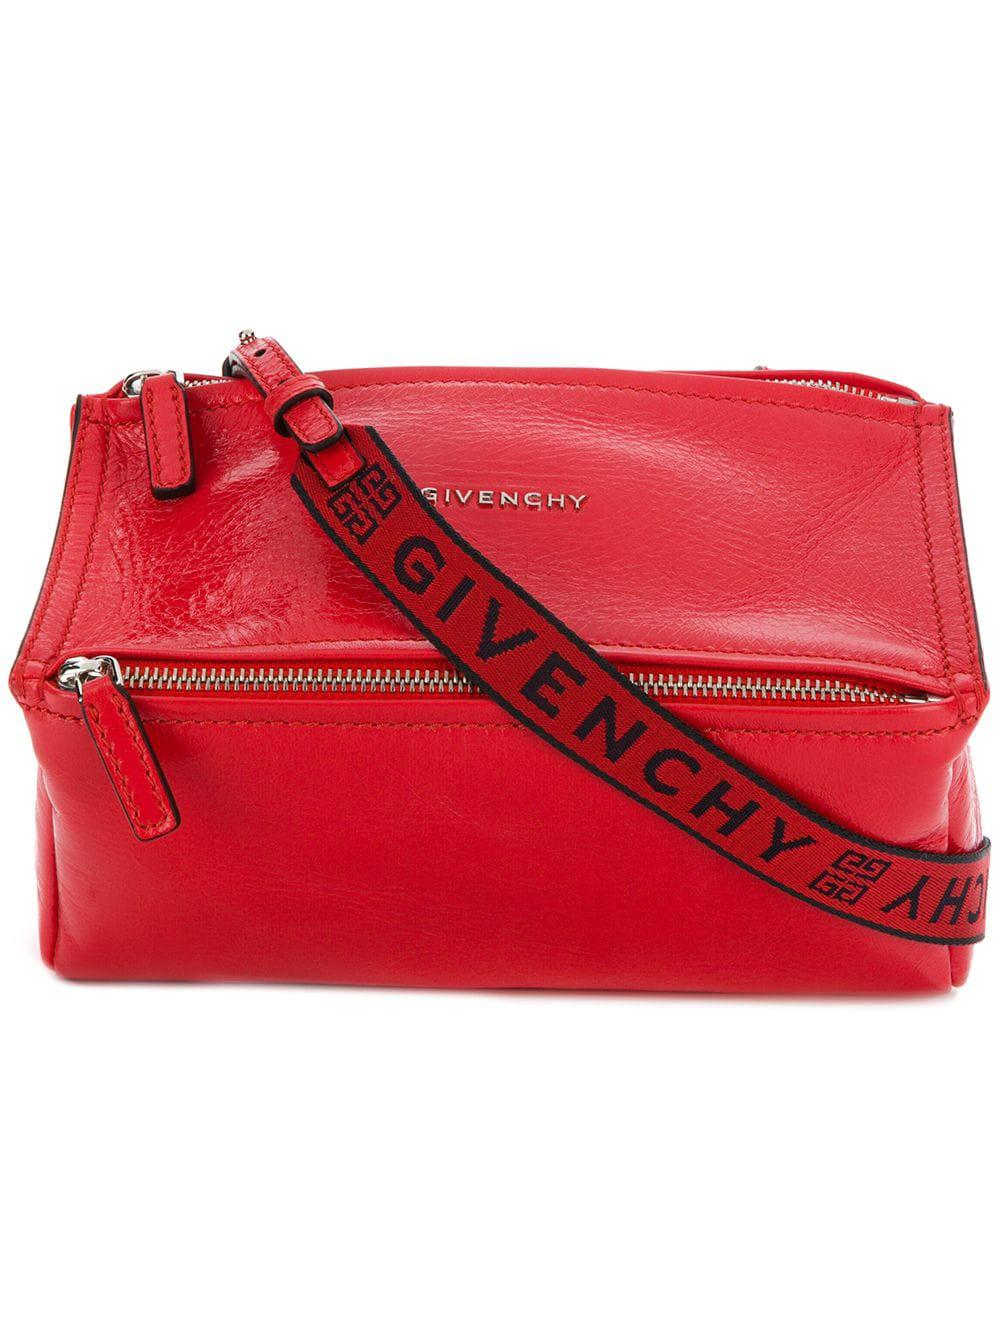 Givenchy - Red Pandora Mini Leather Shoulder Bag - Lyst. View fullscreen 0b275f6be5